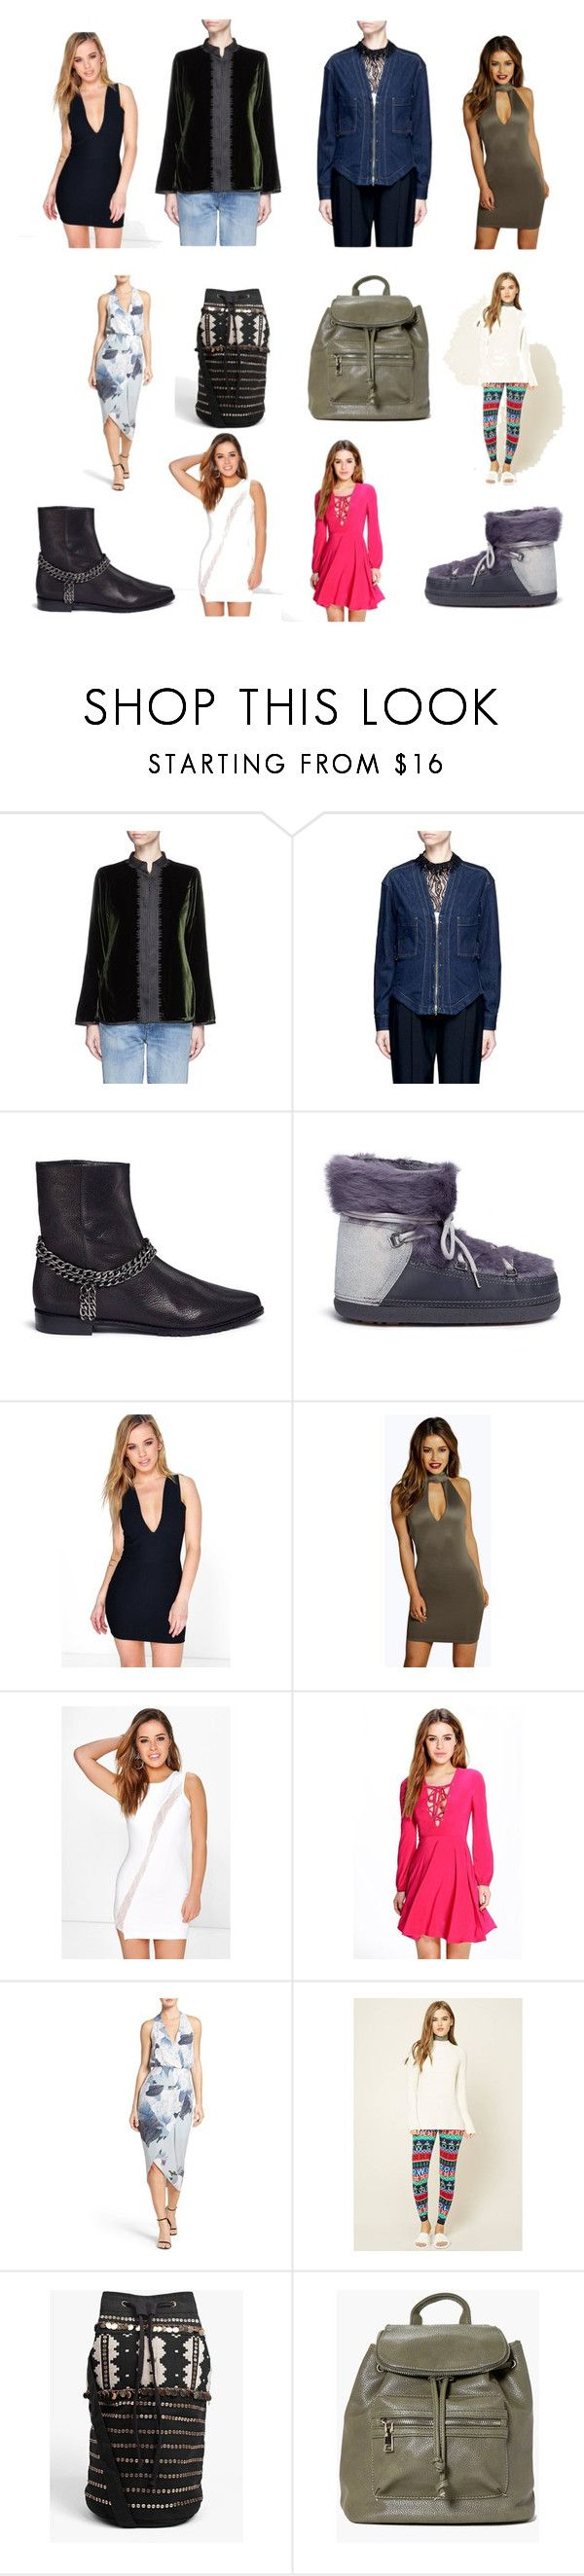 """Wonderful sale"" by cate-jennifer ❤ liked on Polyvore featuring F.R.S For Restless Sleepers, Lanvin, Stuart Weitzman, INUIKII, Boohoo, Cooper St, Forever 21 and vintage"